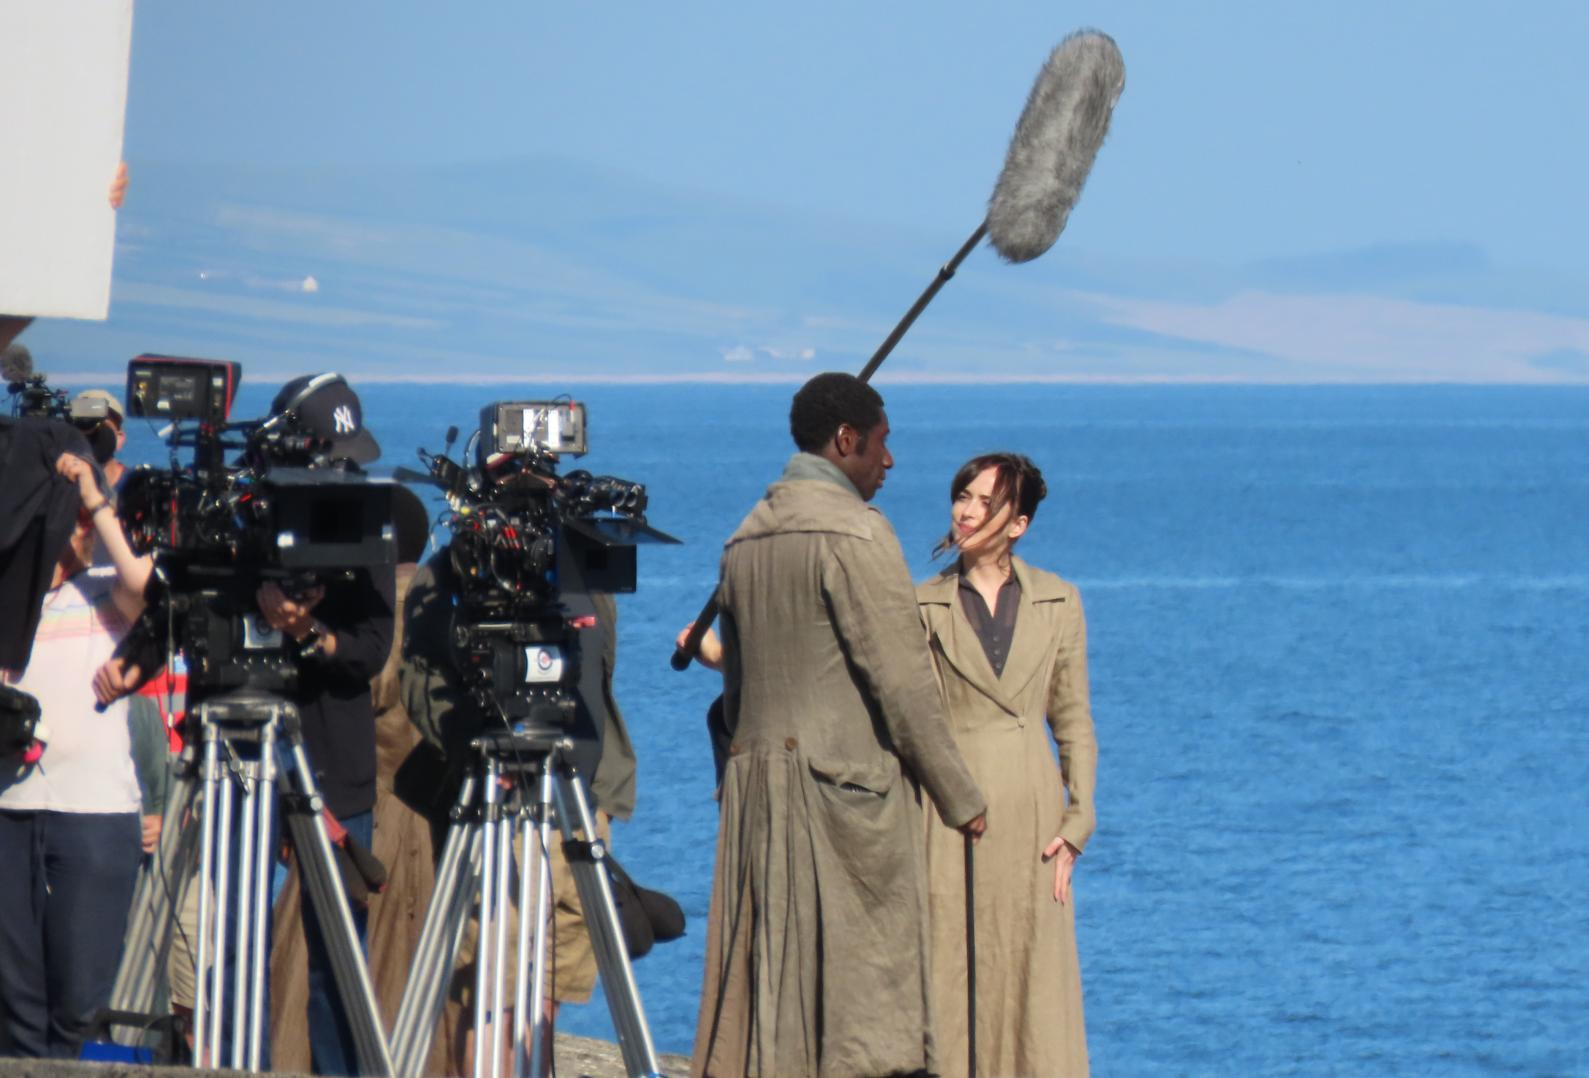 Hollywood star steps out in period costume to film by the sea in Dorset